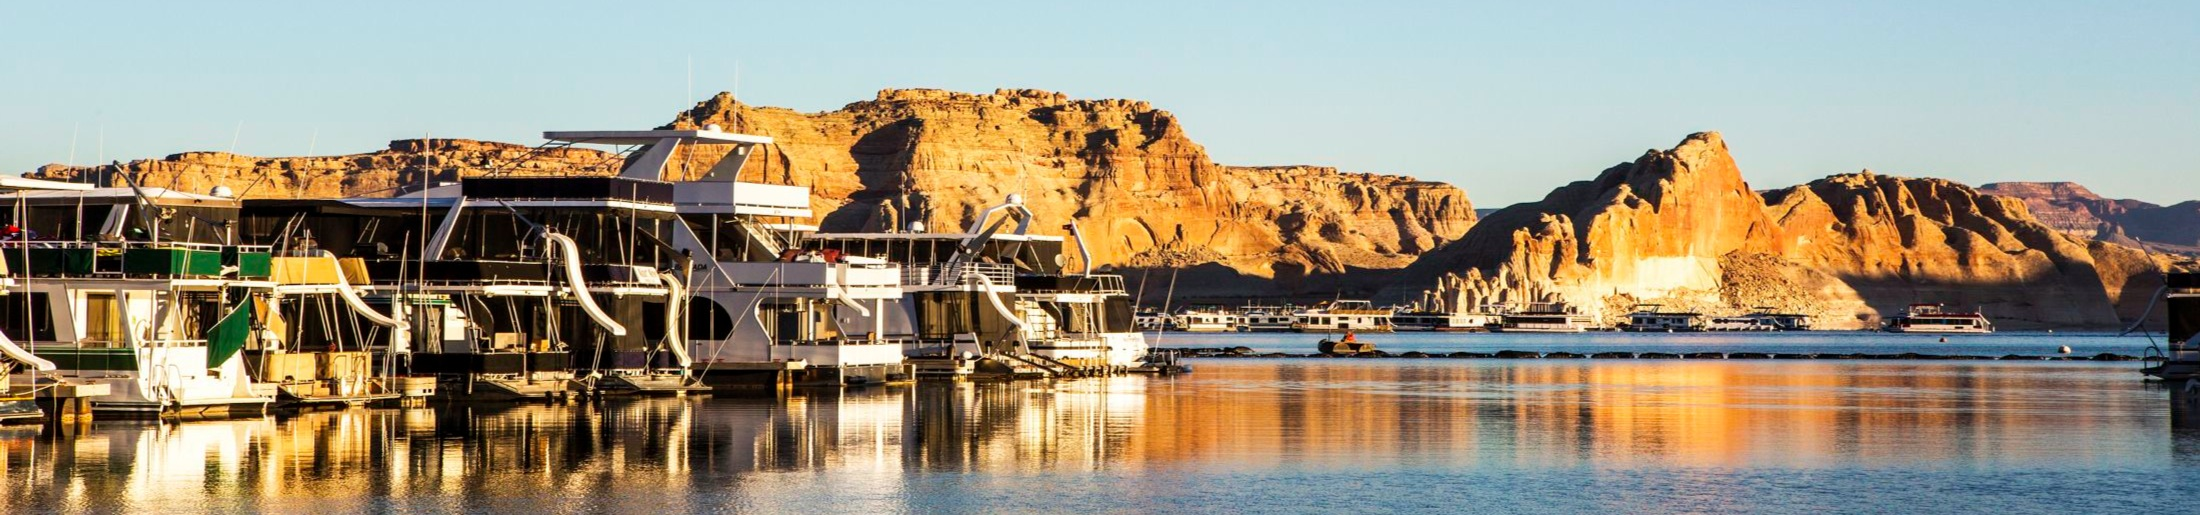 Wahweap Marina Overview Lake Powell Marinas